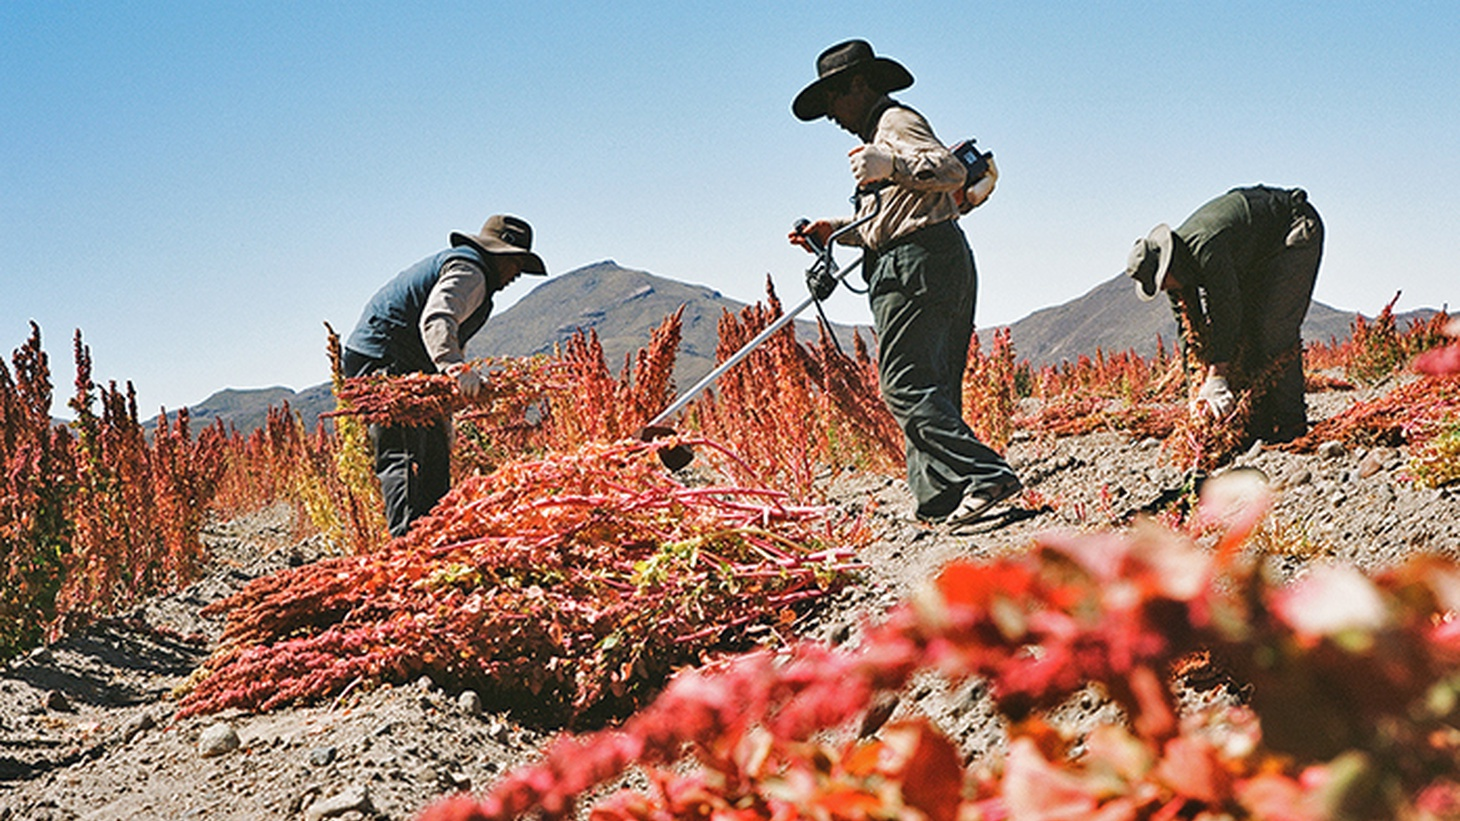 What makes an effective food trend? Lisa Hamilton tells us about the fight over quinoa in Bolivia. Plus, Jonathan Gold tries a new great spot for paella in L.A.